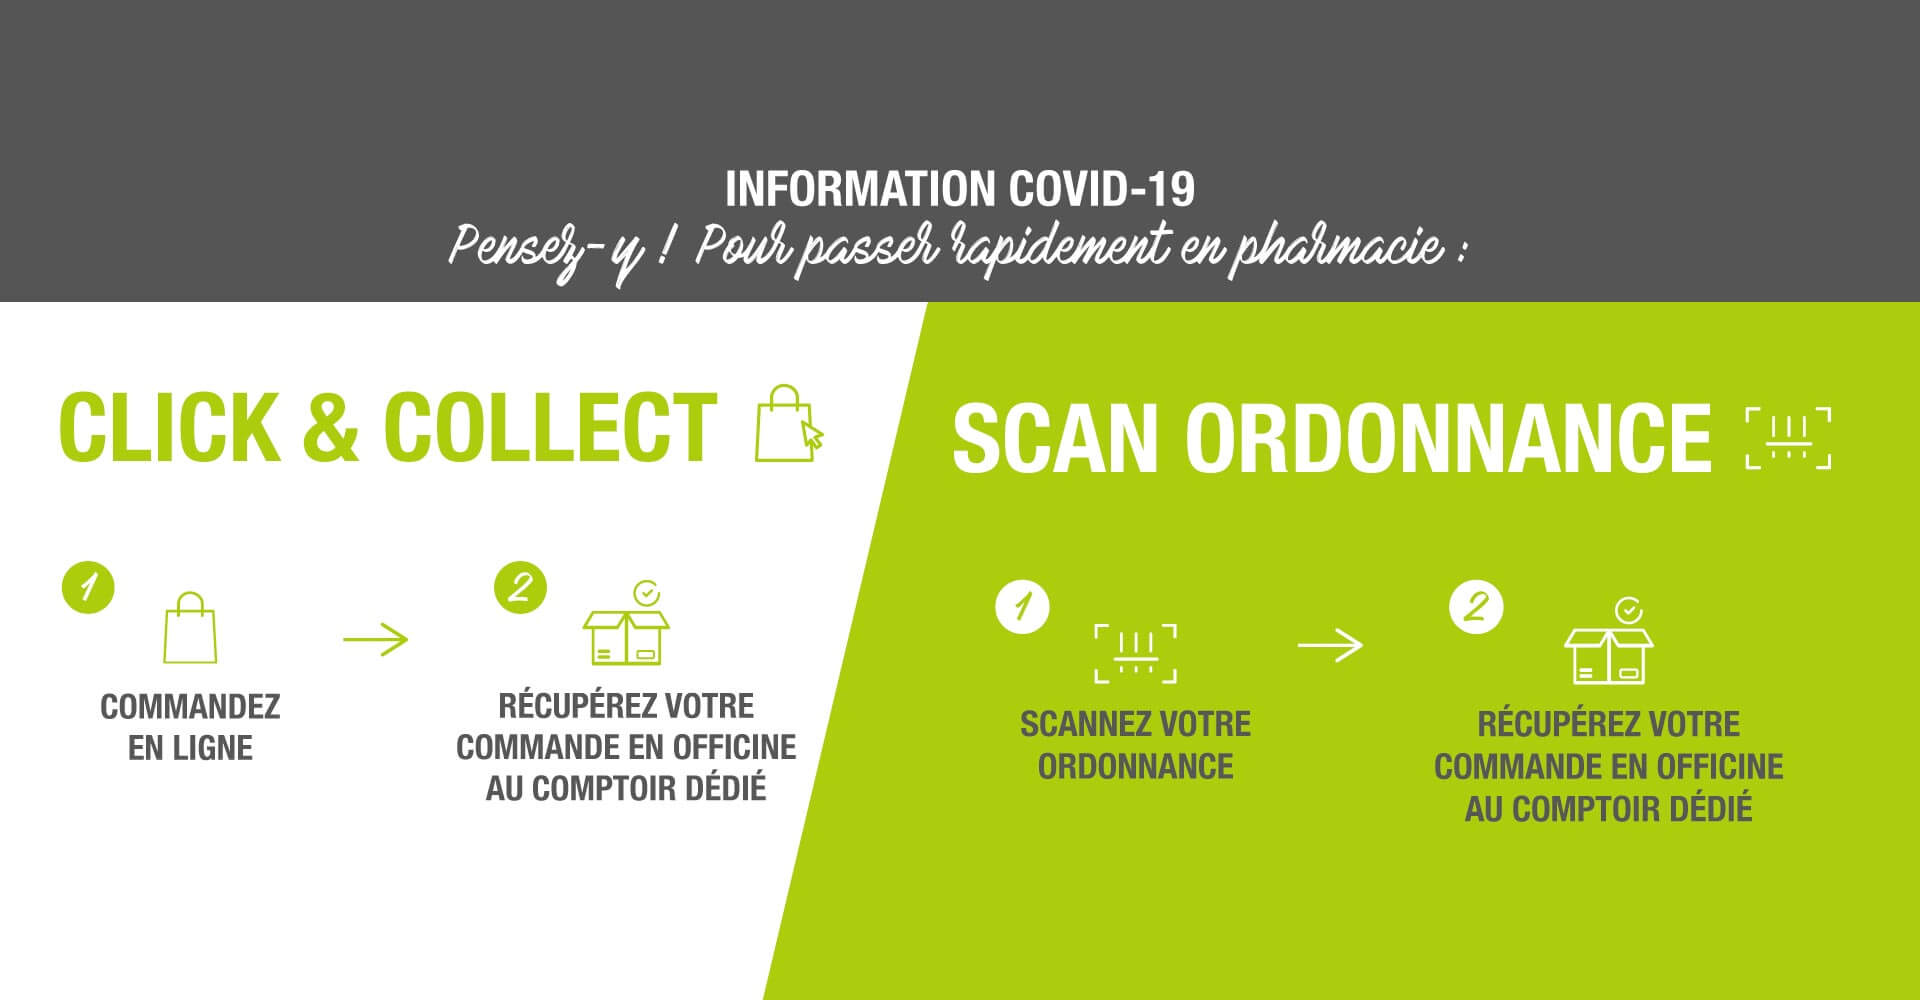 information covid19 : click&collect et scan ordonnance